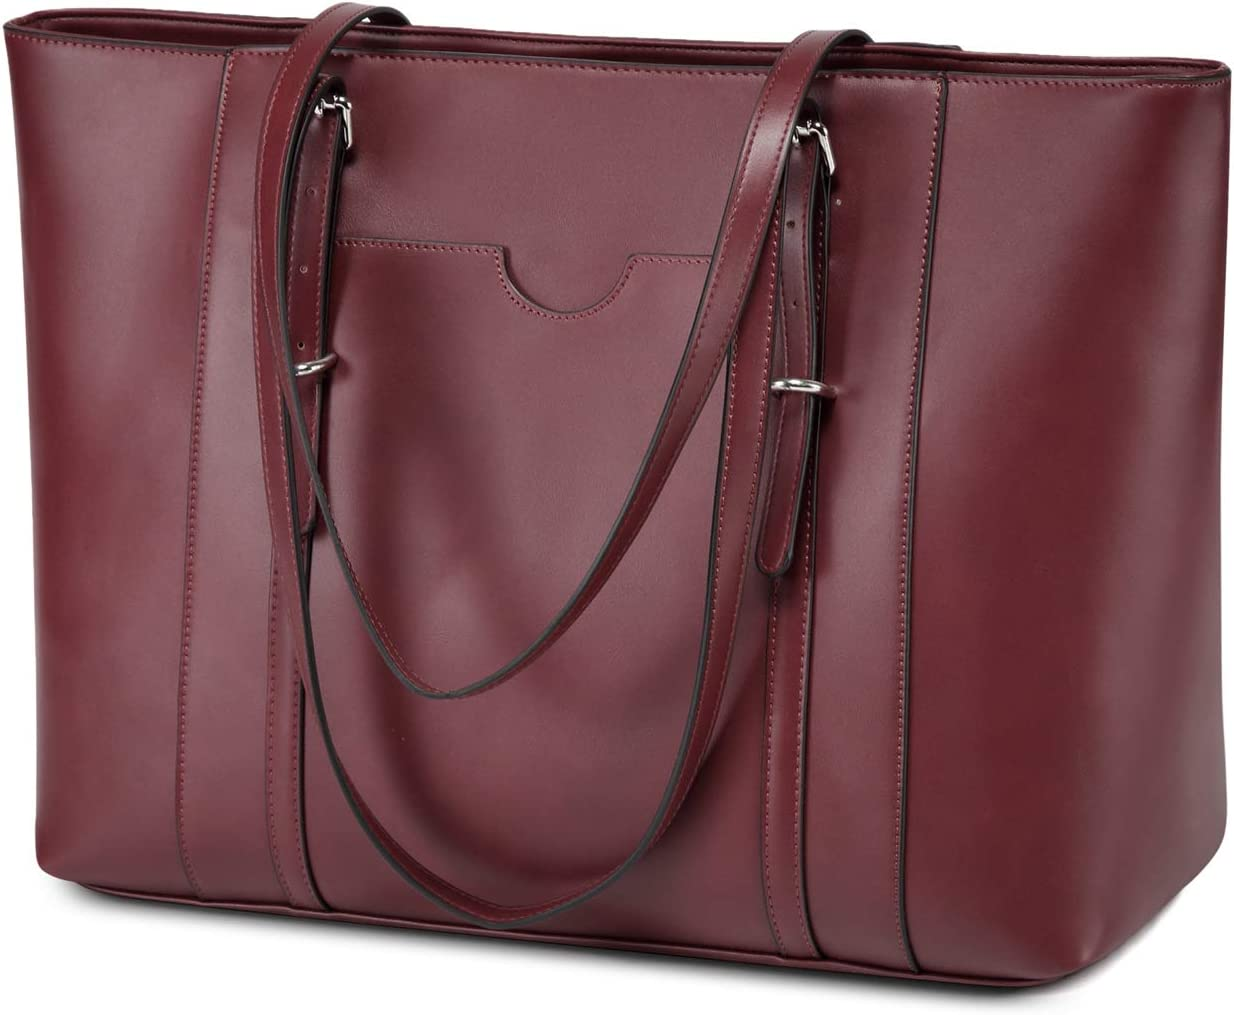 Laptop Tote Bag for Women,Vaschy PU Leather Water Resistant Travel,Work,Teacher Tote Bag Fits 15.6 inch Laptop Burgundy